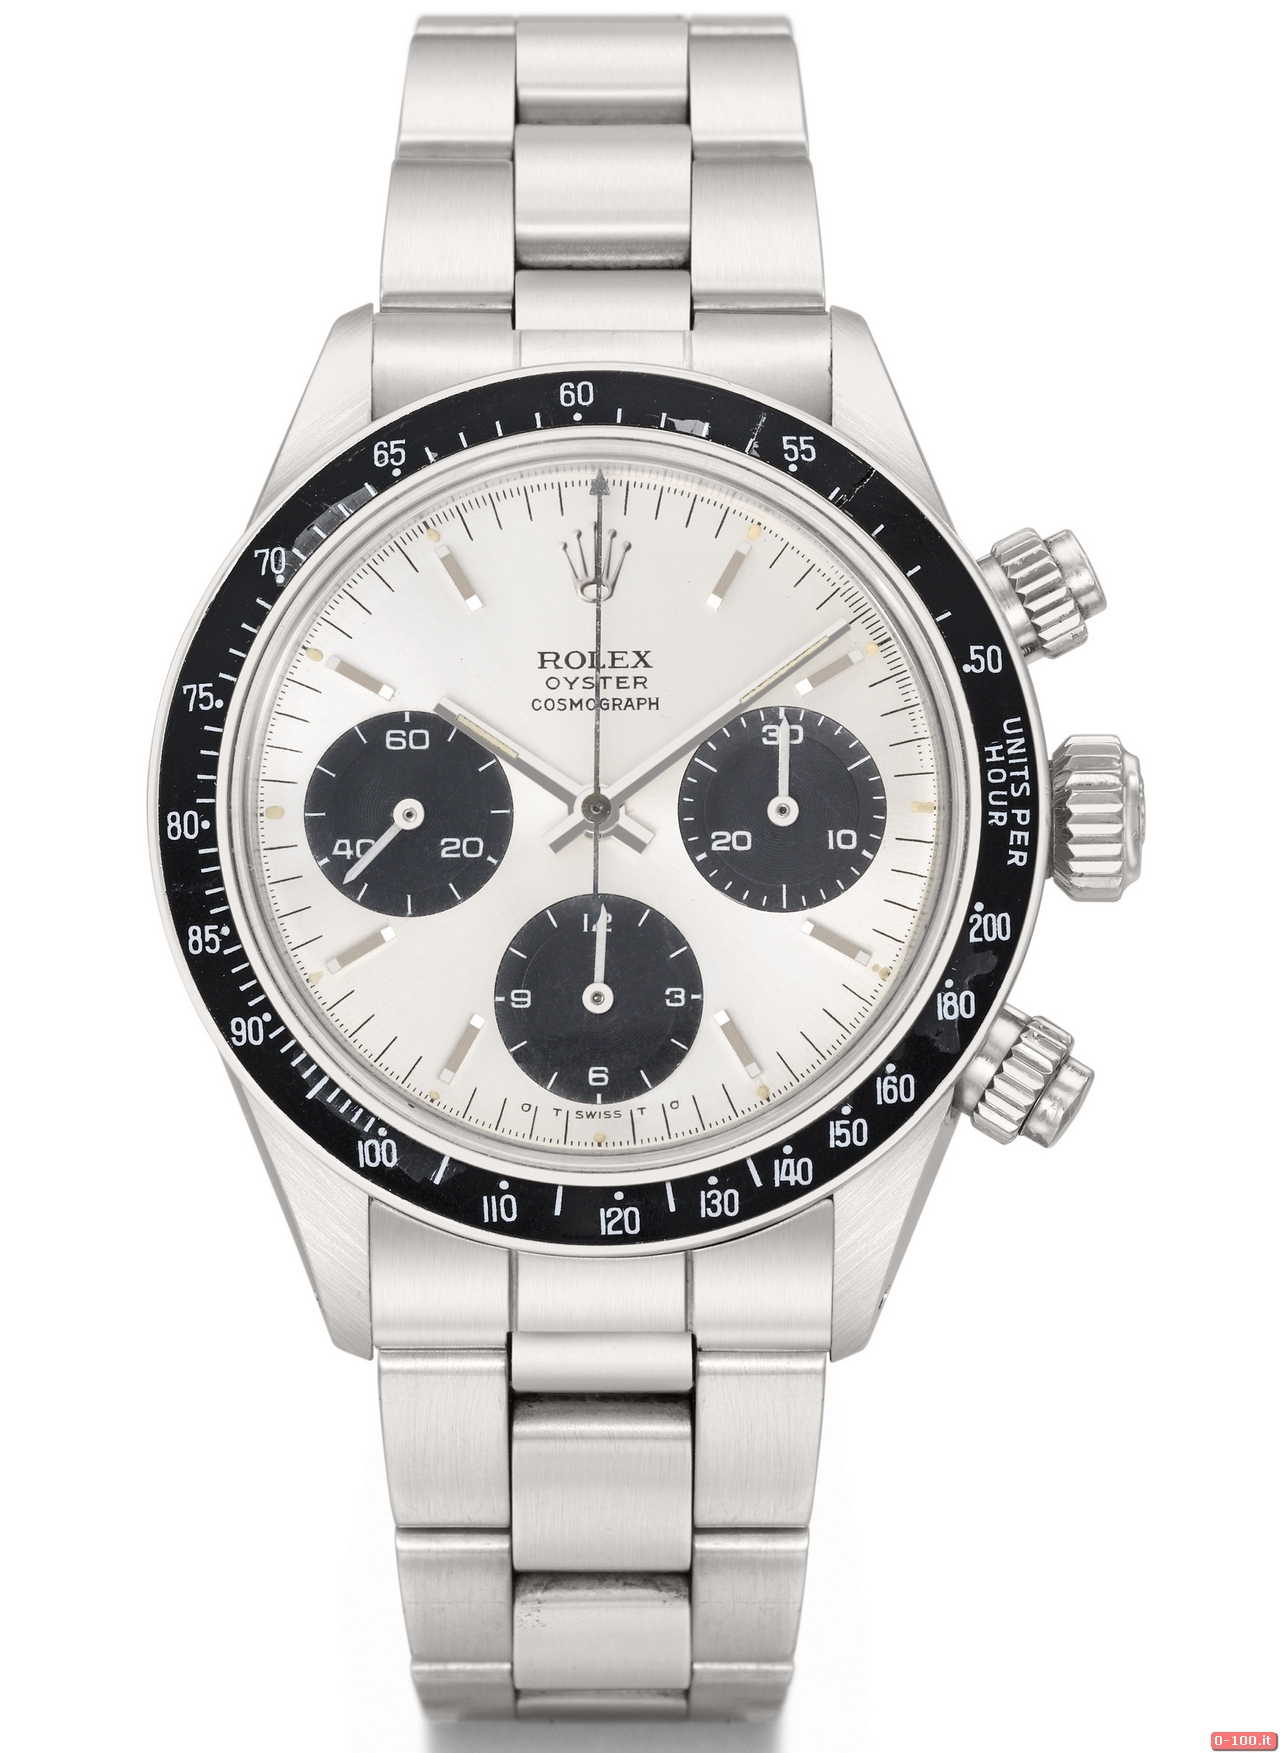 Rolex_FAP Military Oyster Cosmograph_Christies10-100